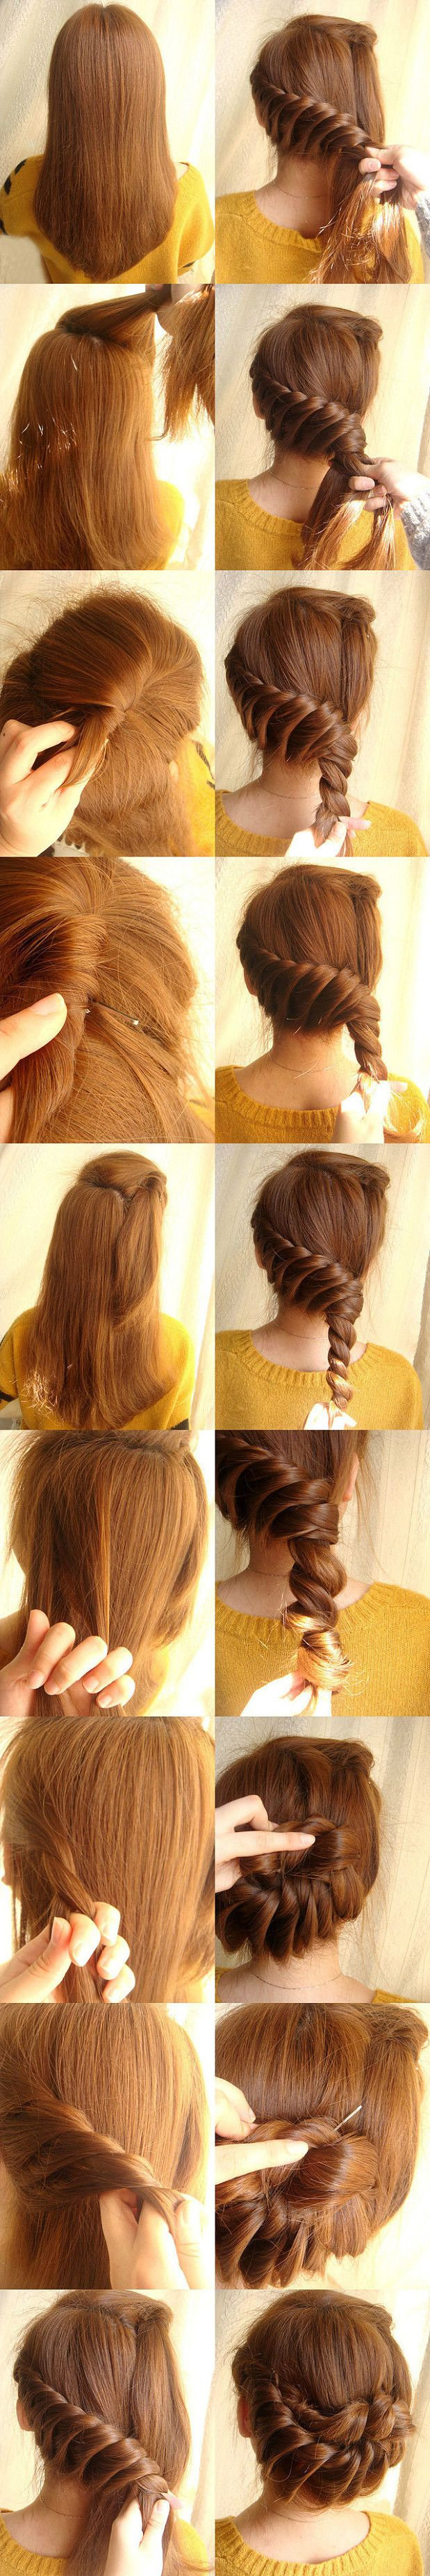 Twist braid up do: Hairstyles, Hair Styles, Makeup, Braids, Beauty, Hair Twist, Updo